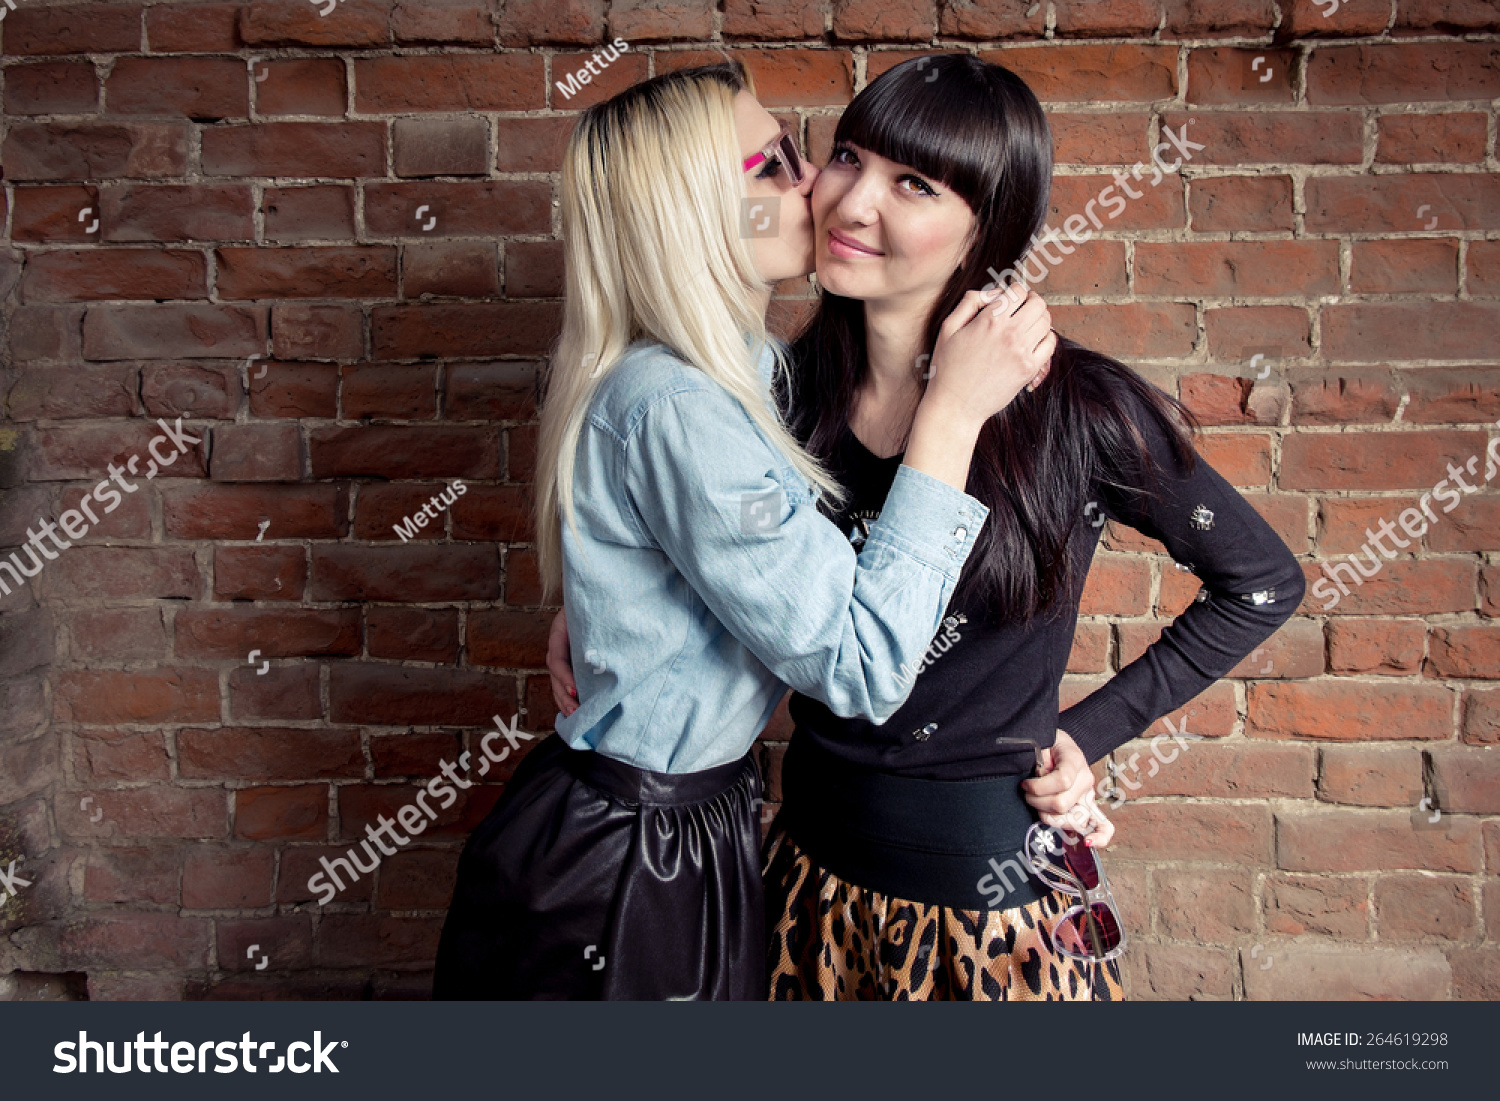 Two girls kissing outdoors near red brick wall